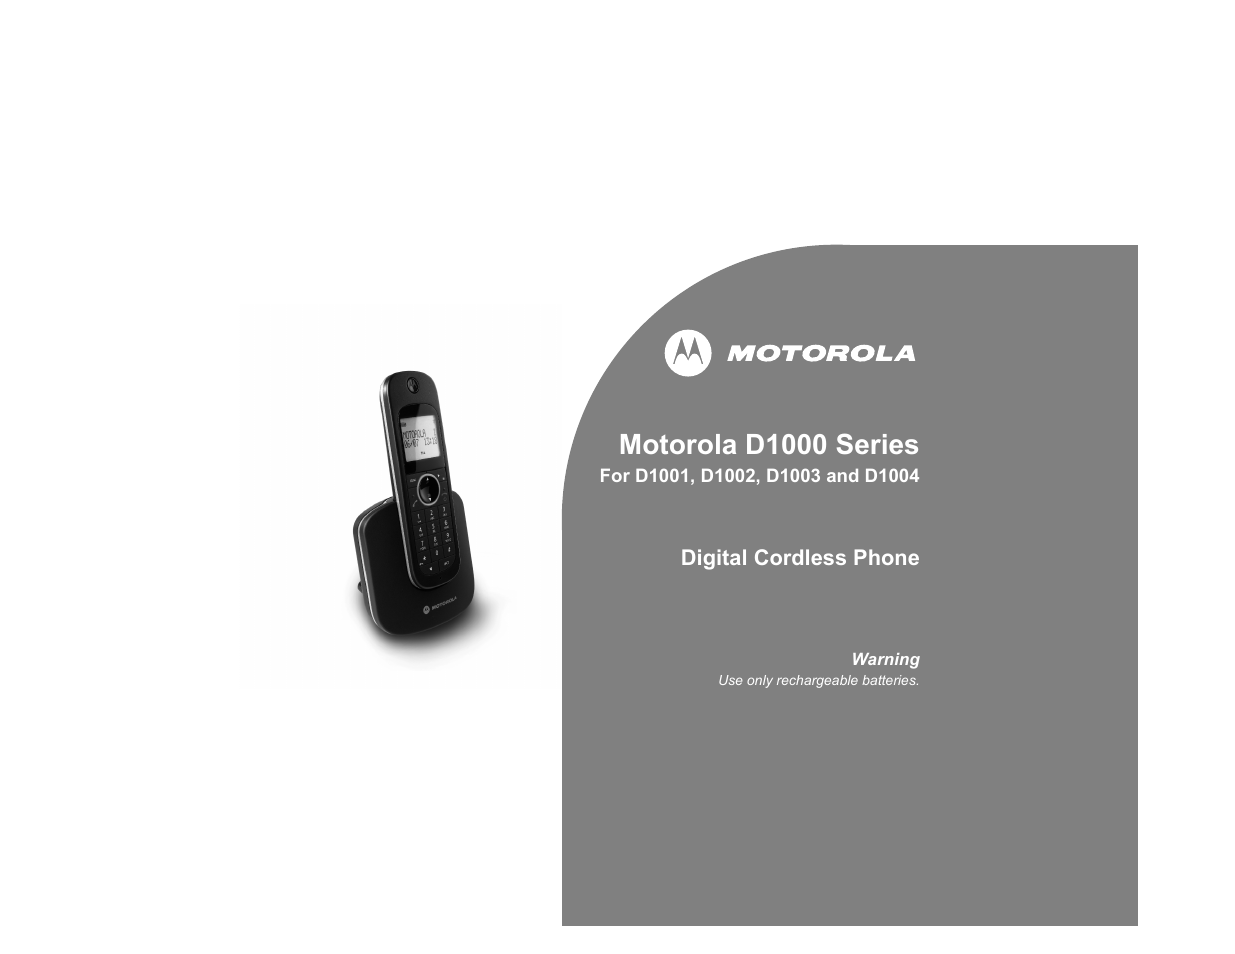 motorola digital cordless phone d1004 user manual 45 pages also rh manualsdir com Garmin GPS Manual Motorola Baby Monitor